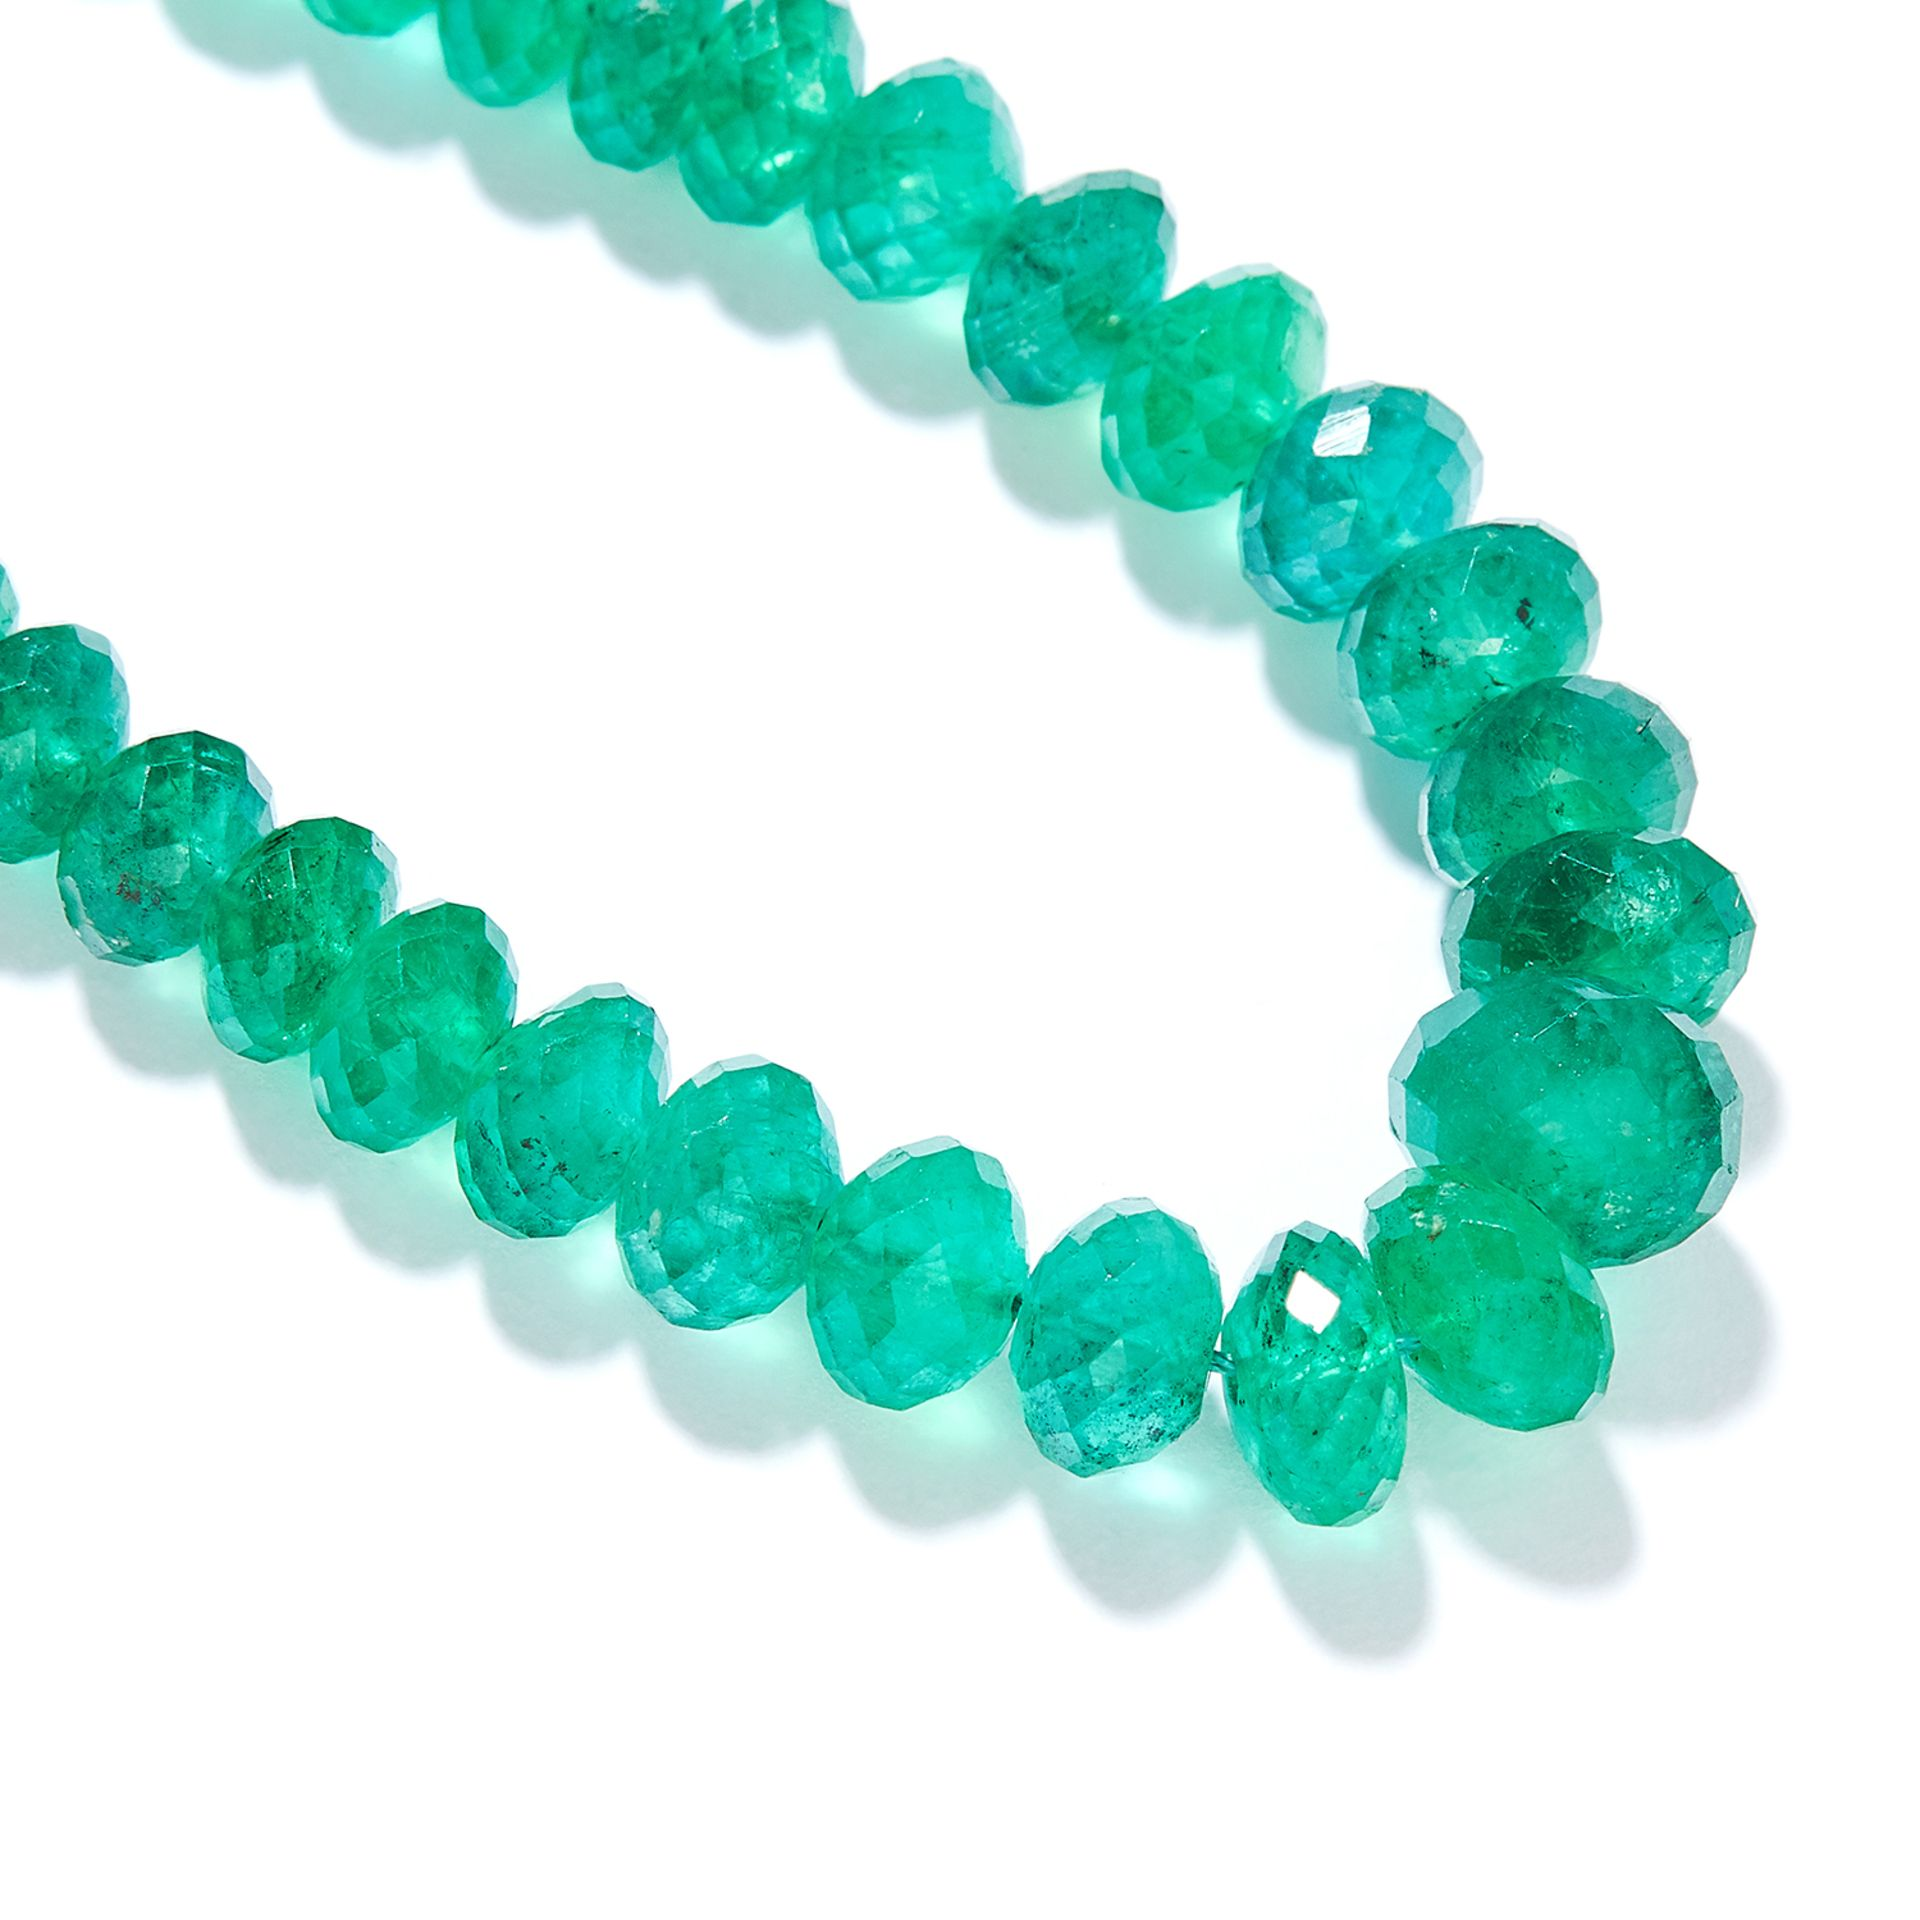 EMERALD BEAD AND DIAMOND NECKLACE in 18ct yellow gold, comprising a row of one hundred and sixteen - Bild 2 aus 2